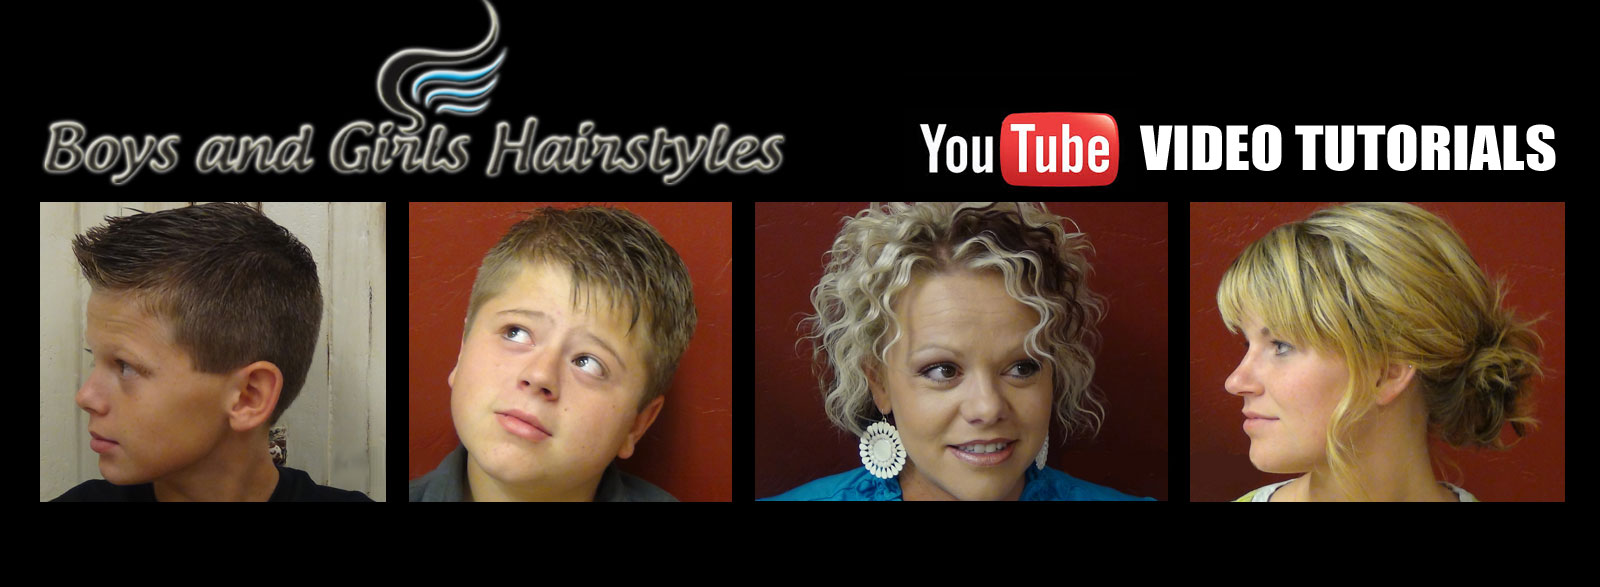 Wondrous Homepage Boys And Girls Hair Styles Hairstyles For Men Maxibearus